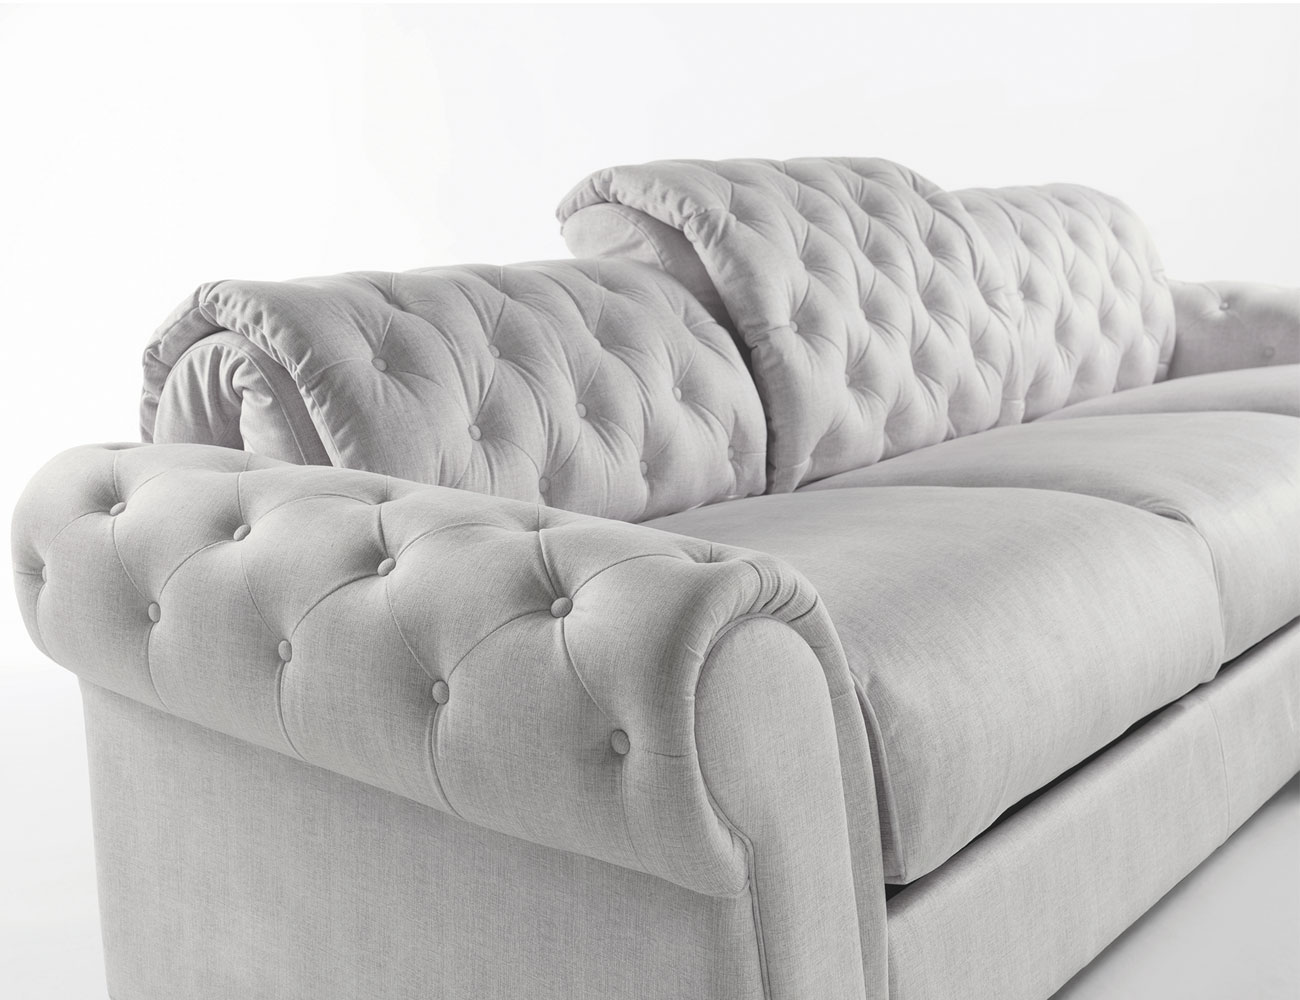 Sofa chaiselongue gran lujo decorativo capitone blanco tela 142